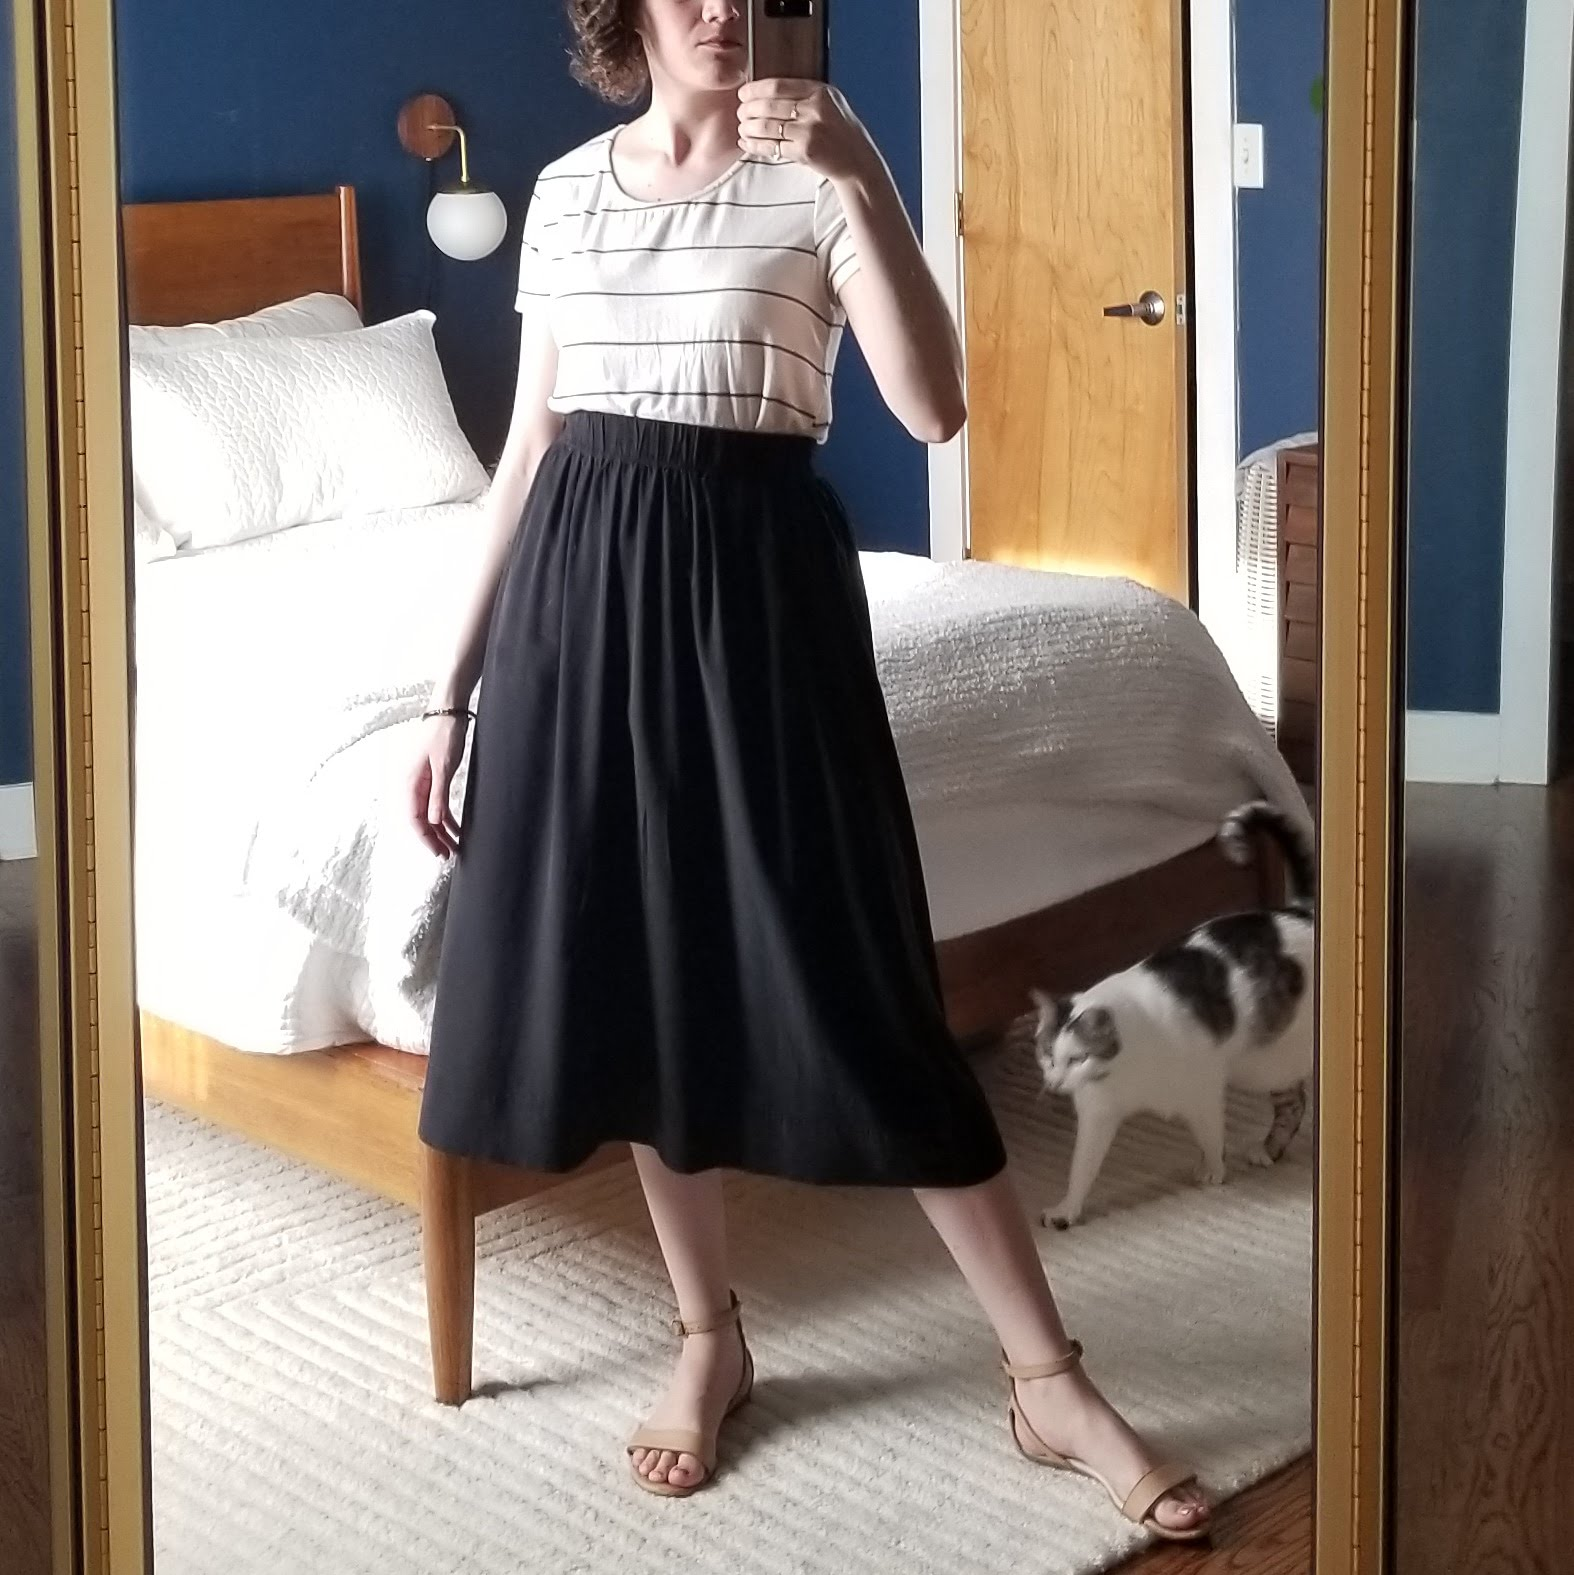 Friday - May 11, 2018Black silk skirt no. 1. This is the ES bel skirt. No pockets, but nice midi length and a good weight material. Somewhat shapeless, but still moves in a fluid, dynamic way.